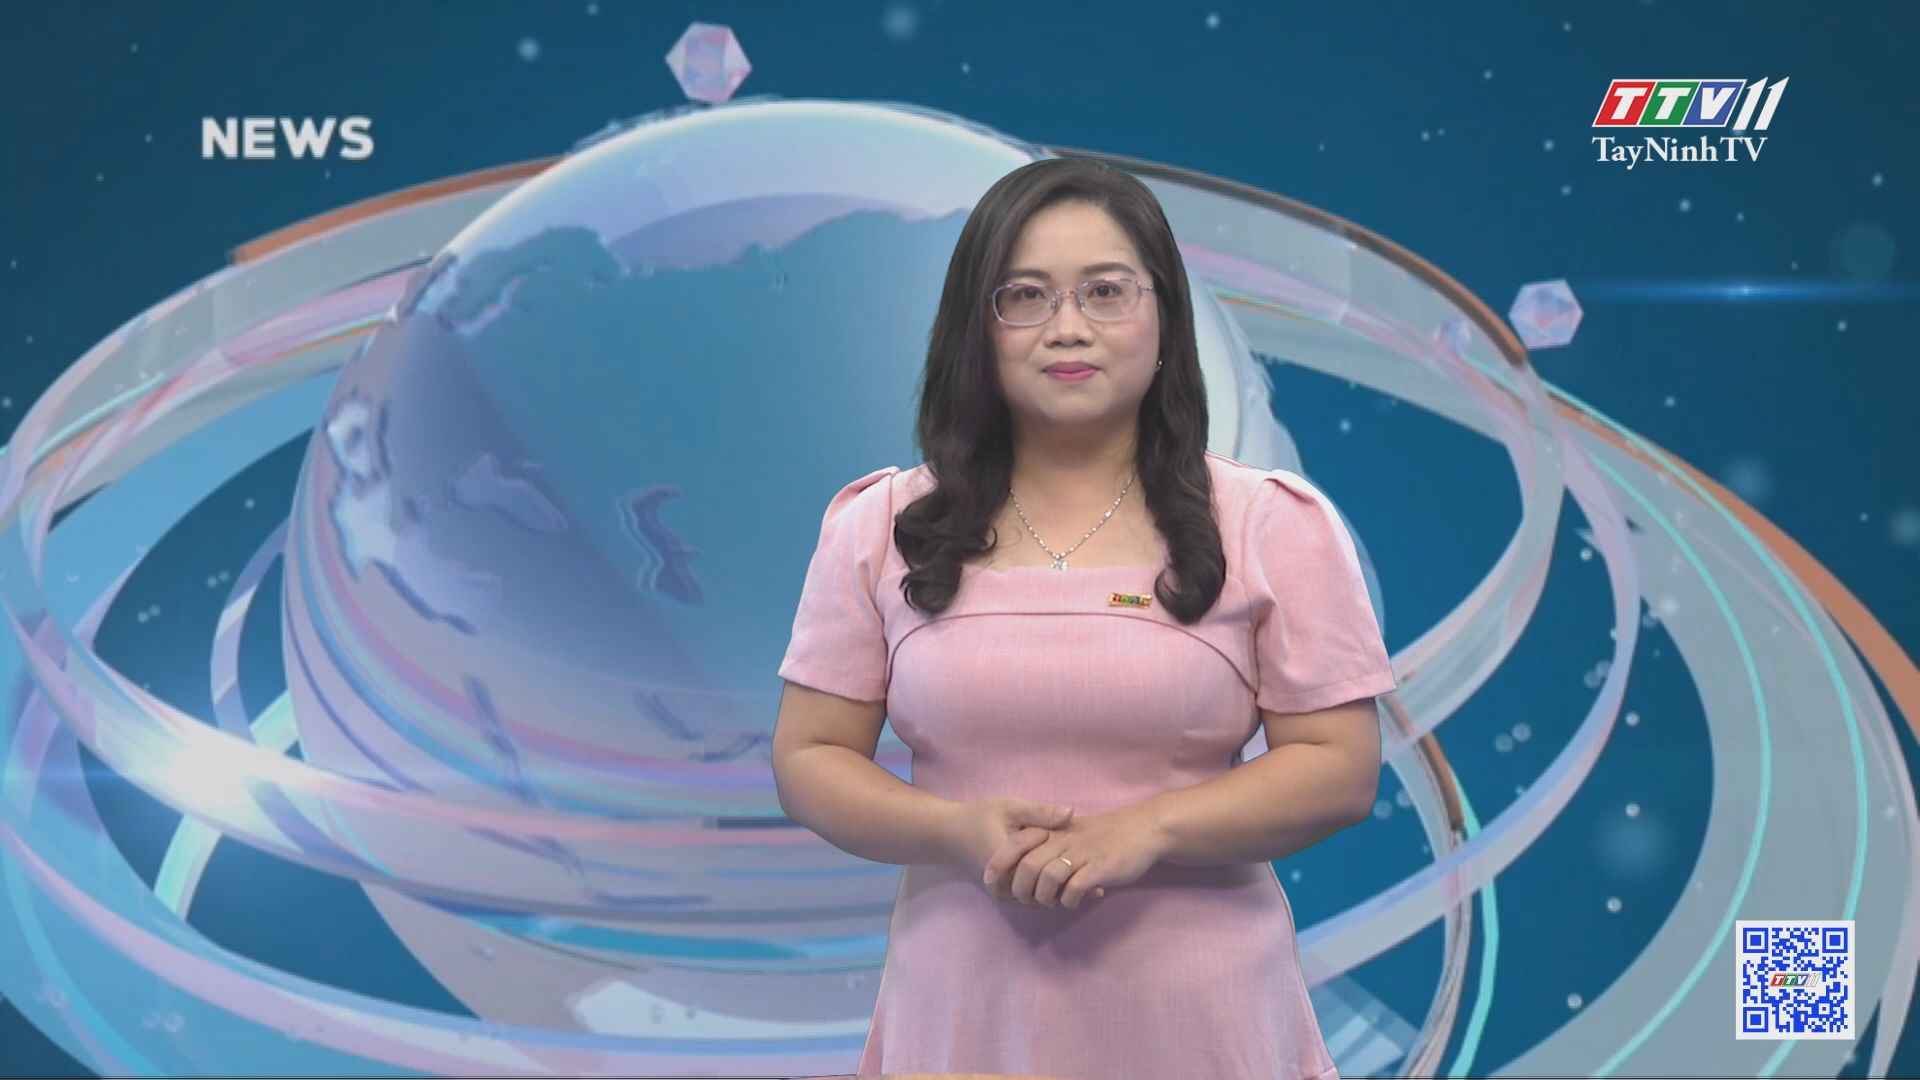 Vice Chairwoman of Vietnam Women's Union Central Committee visited TayNinh's Border Guard Stations   TTVNEWS   TayNinhTV Today